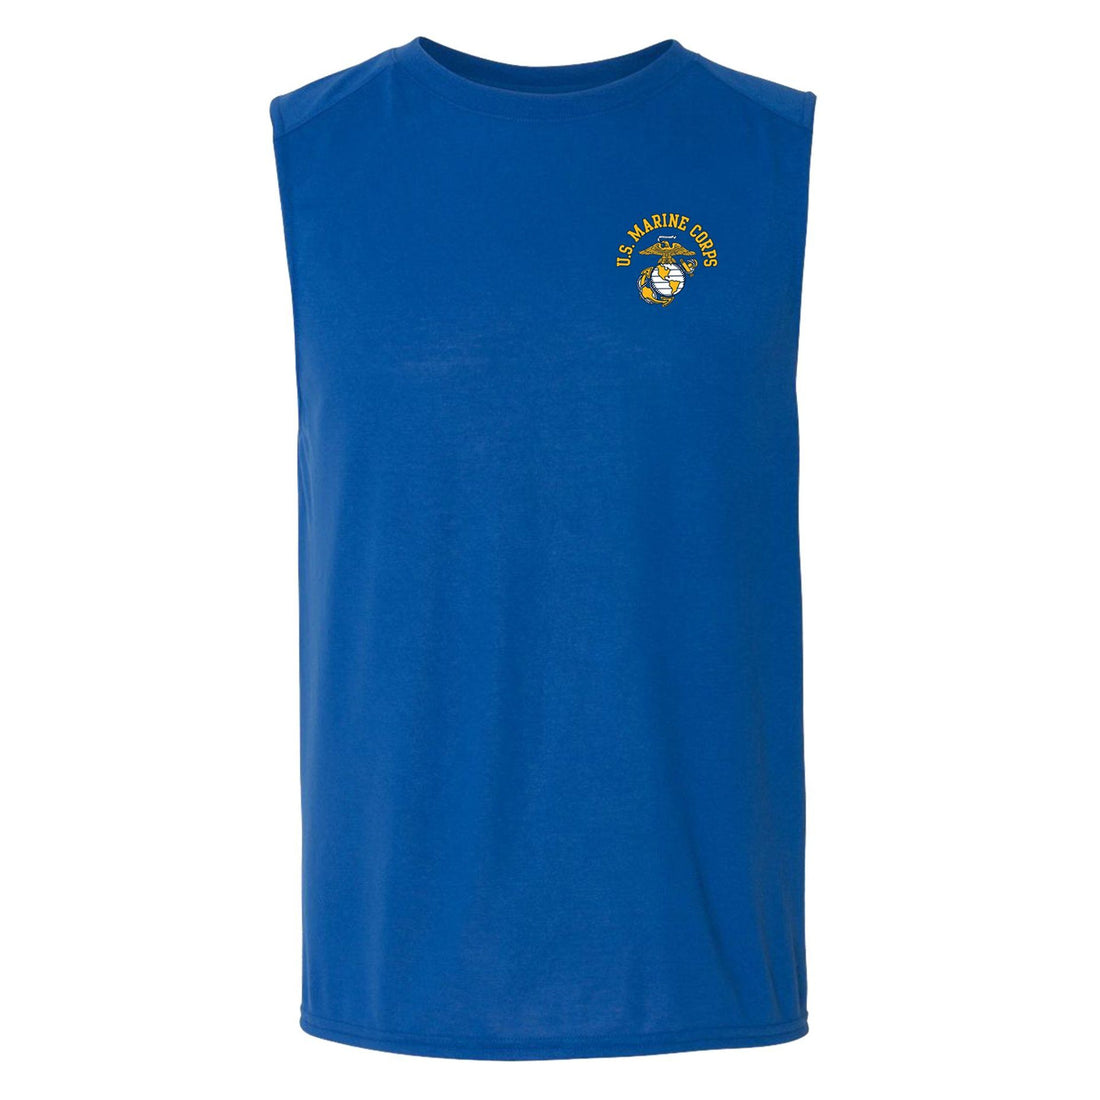 COMBAT CHARGED DRI-FIT PERFORMANCE POLY US EGA SLEEVELESS